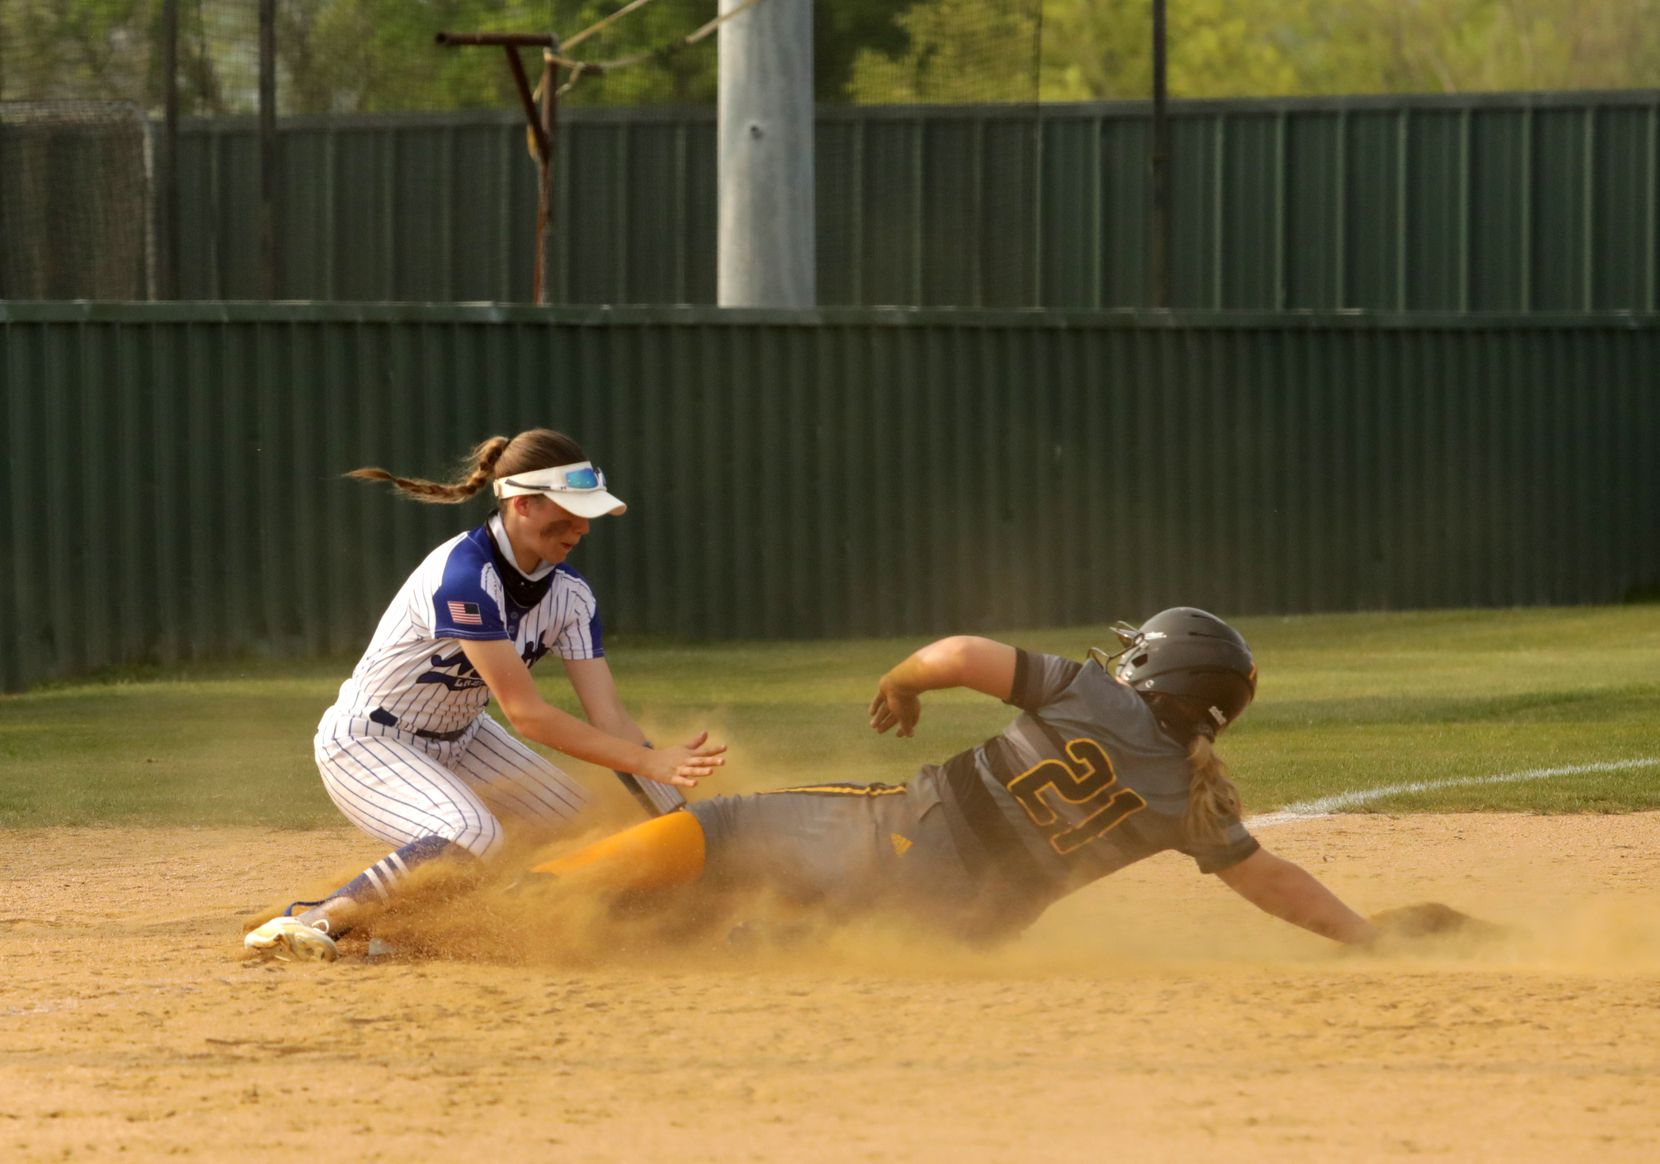 Hannah Reyes, left, guards third base and Katie Kretz slides in during a softball game between Forney at North Forney at North Forney High School in Forney, TX, on Apr. 9, 2021. (Jason Janik/Special Contributor)